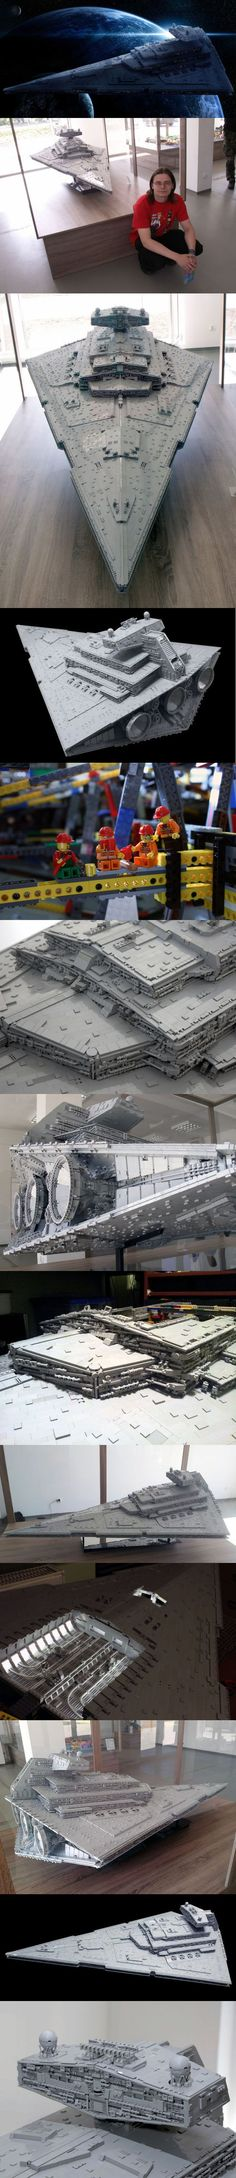 The biggest, most accurate Lego Imperial Star Destroyer ever built More than 40,000 bricks. 110 pounds (50 kilograms). 6.62 feet long (2.02 meters). 4.1 feet wide (1.25 meters). 1.9 feet tall (58 centimeters). Eight months of design and building. Those are the stats for the biggest, most accurate Lego Imperial Star Destroyer ever built. More here: http://lego.gizmodo.com/the-biggest-most-accurate-lego-imperial-star-destroyer-1585399306/+kcampbelldollaghan